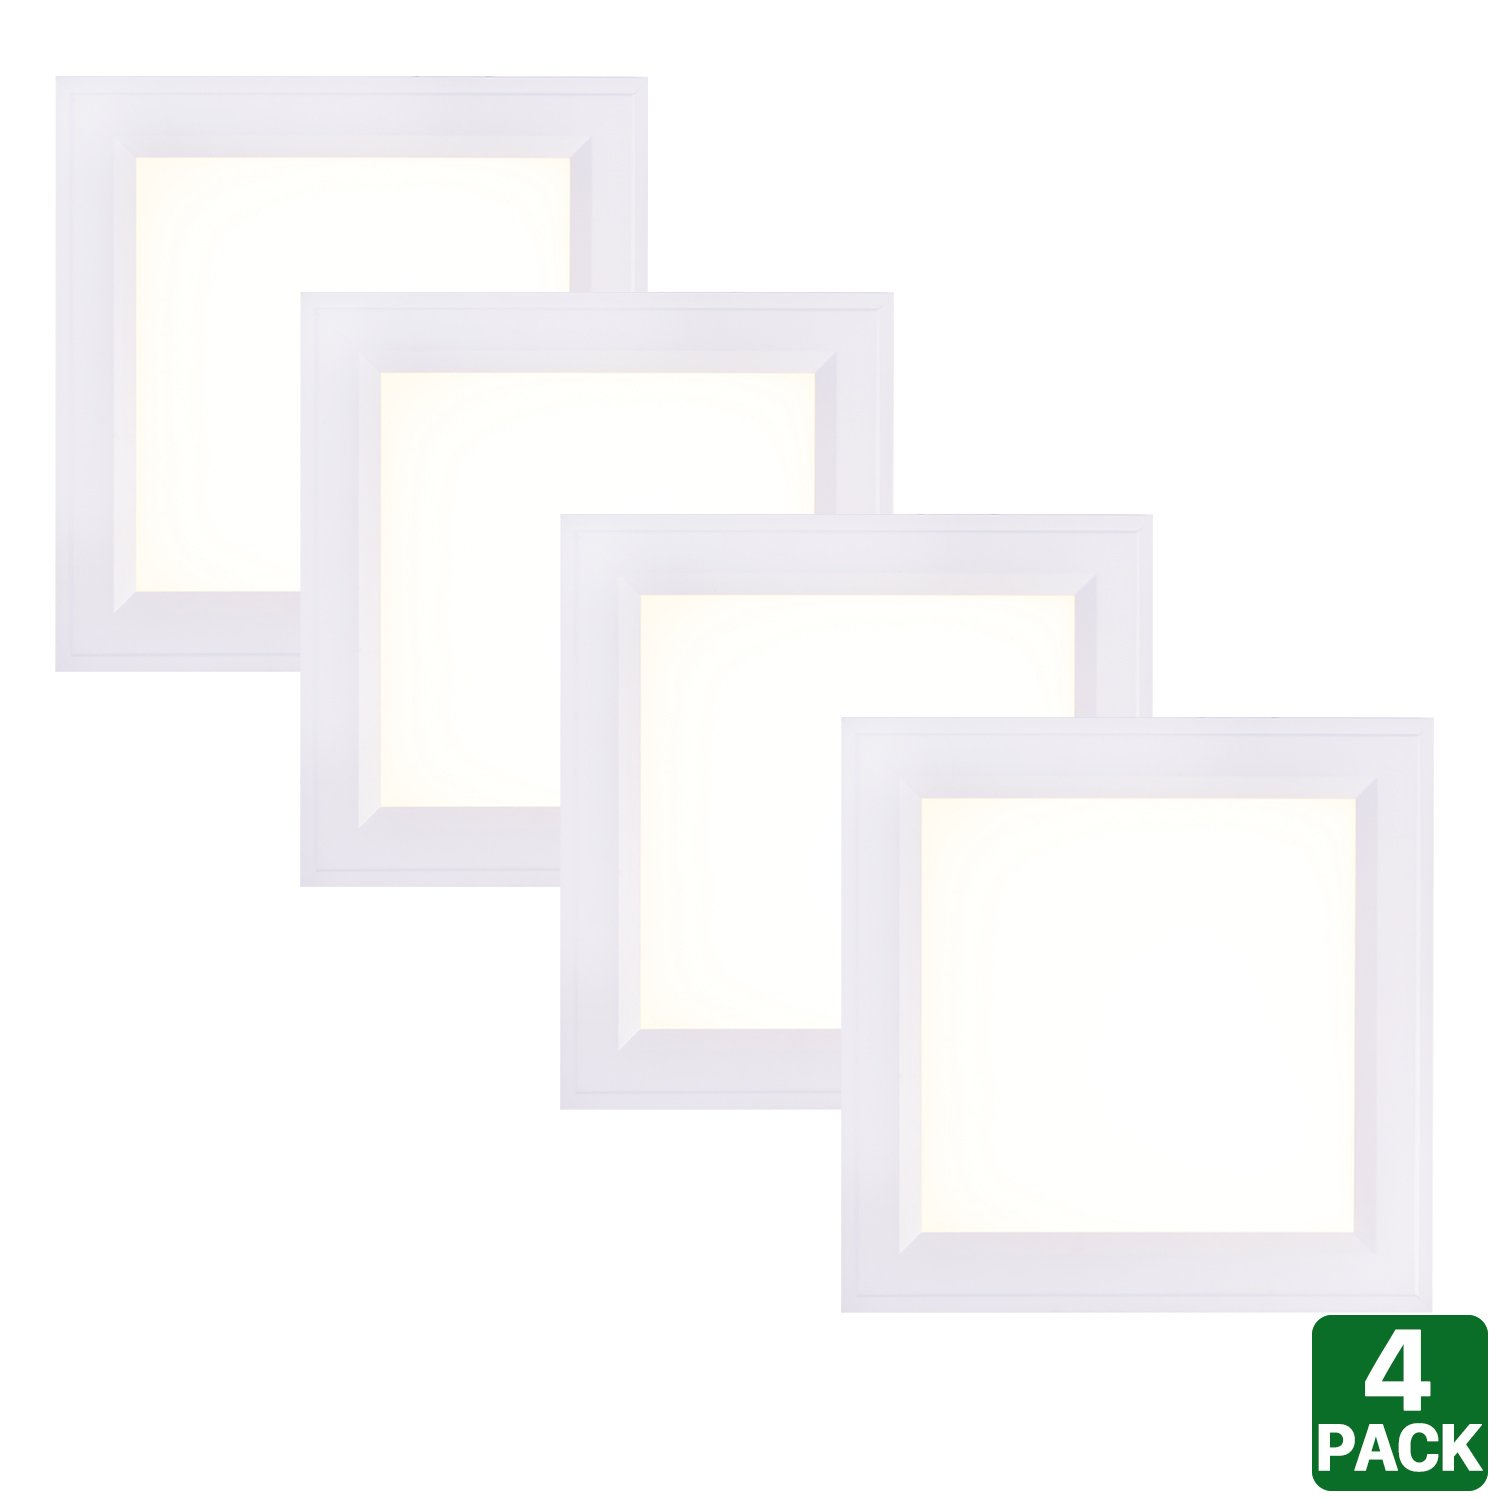 4 Pack Hykolity 1ft X 1ft Ultra Thin Edge-Lit 18W LED Flat Panel Light Residential Flushmount Surface Mount/ Commercial Drop Ceiling Dimmable Ceiling Lamp Fixture 1700lm